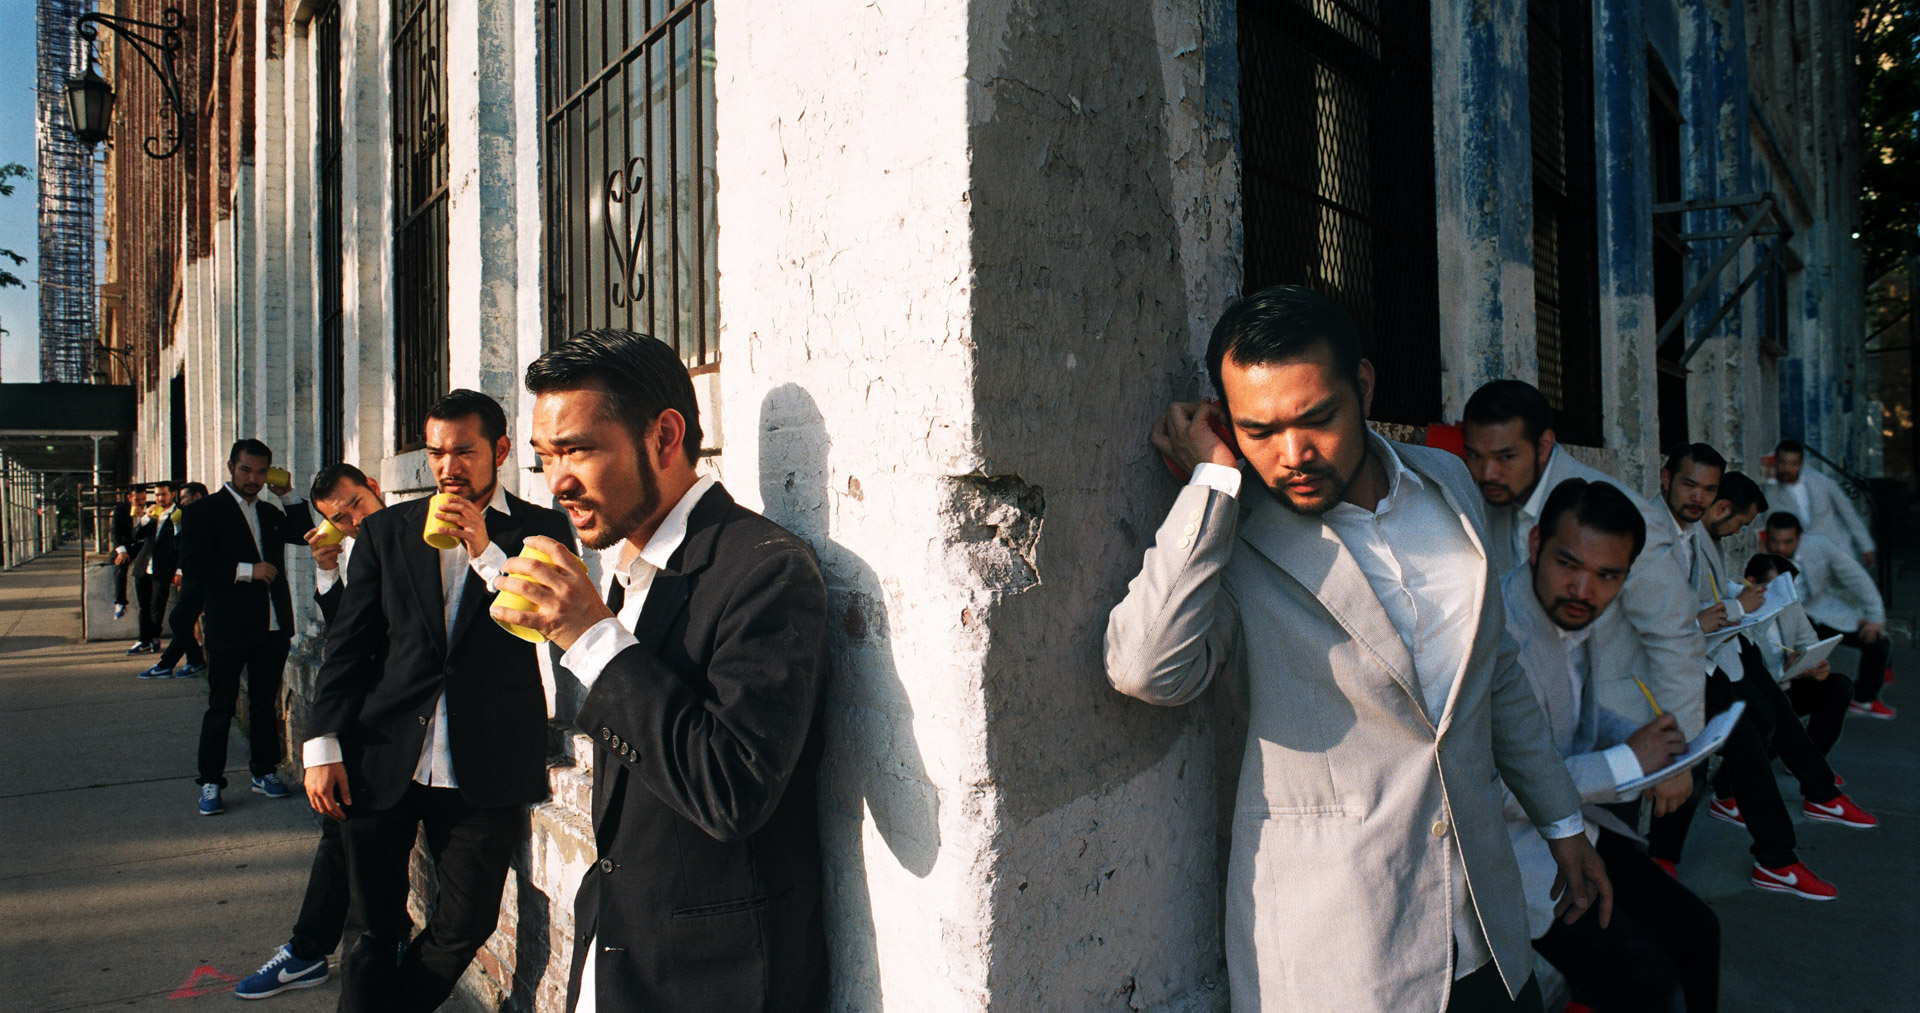 A group of asians in dark suits on a corner talking on the phone, same group of asians in white around the corner writing down what they are saying.